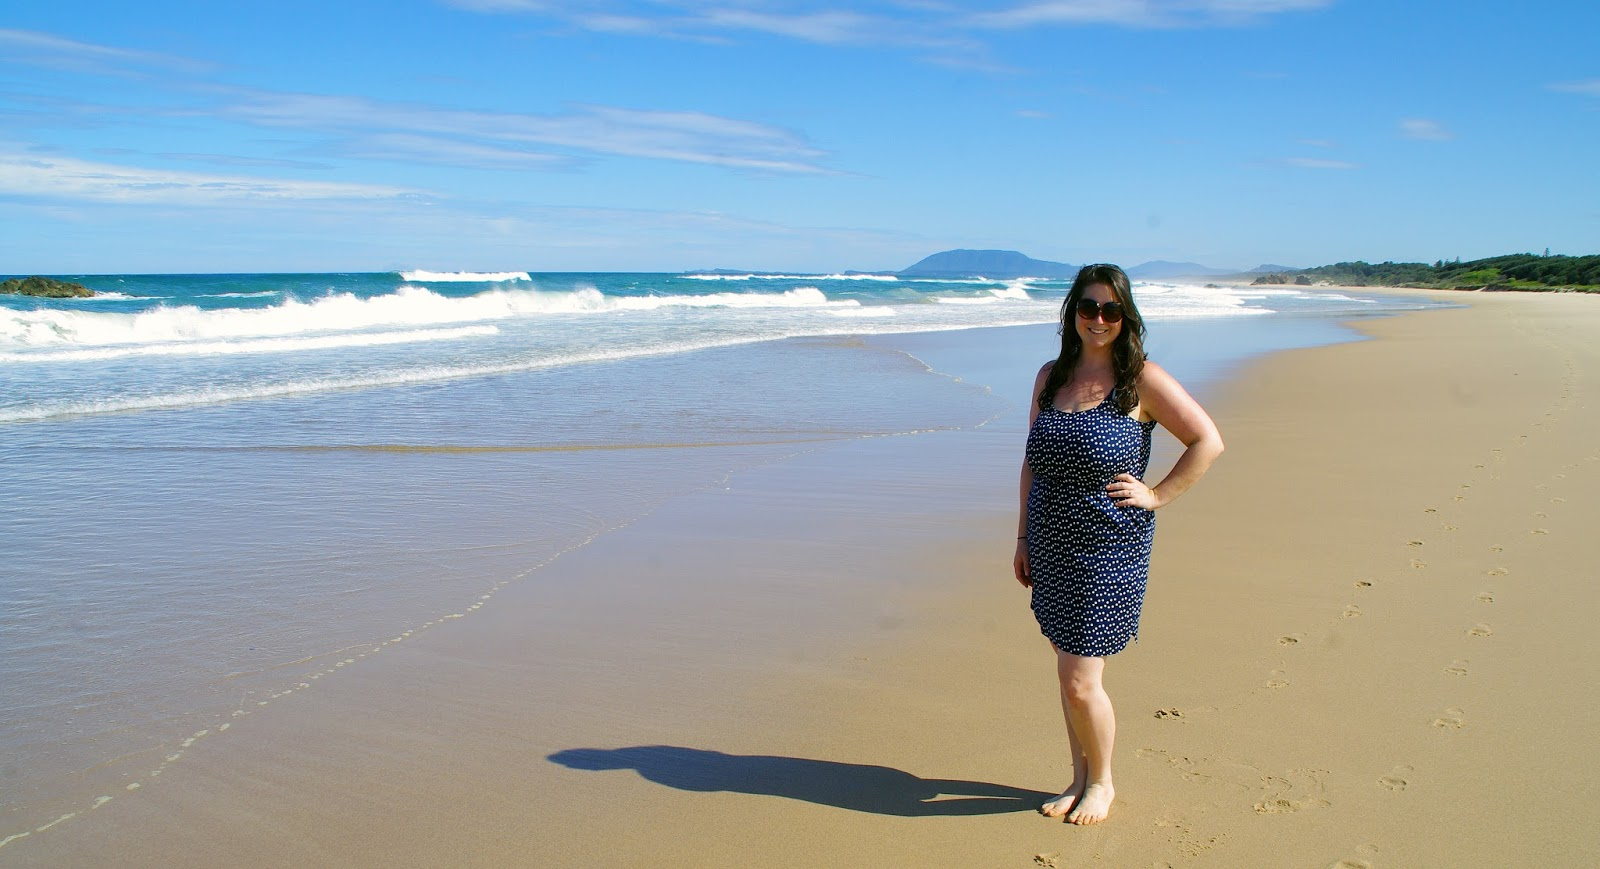 the Aussie flashpacker in port macquarie